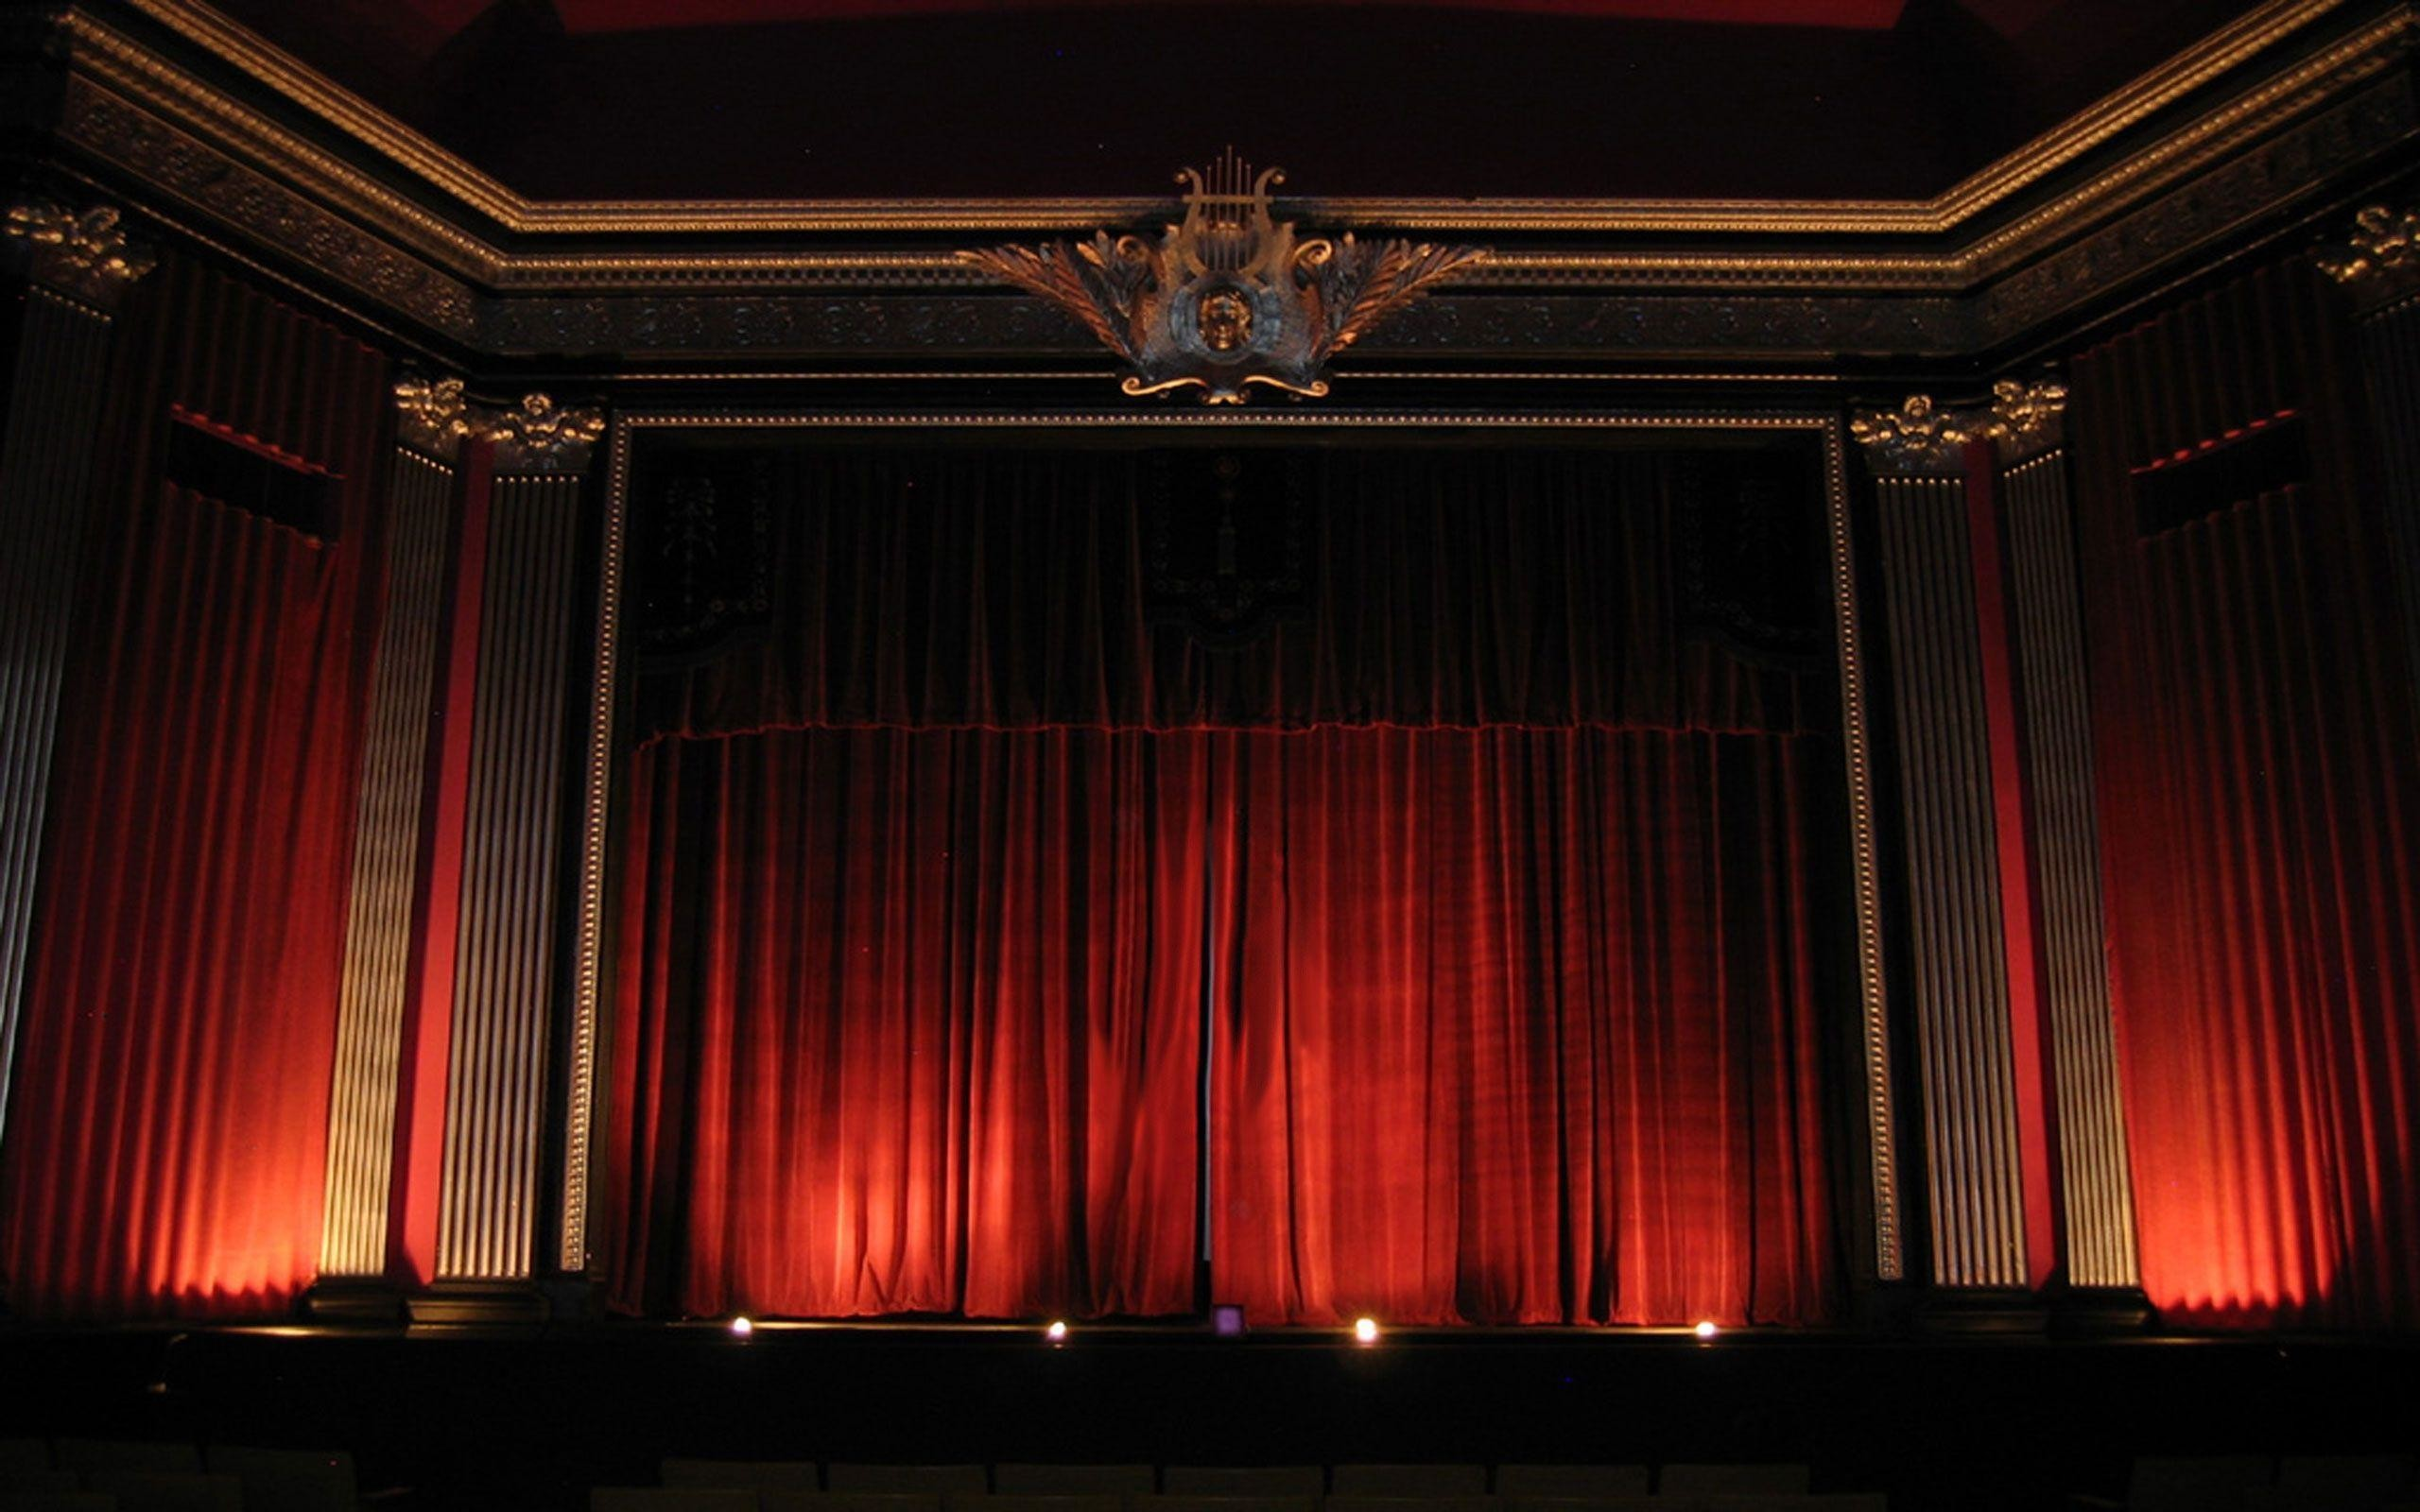 2560x1600 Theater Red Curtains Wallpaper and Stock Photo